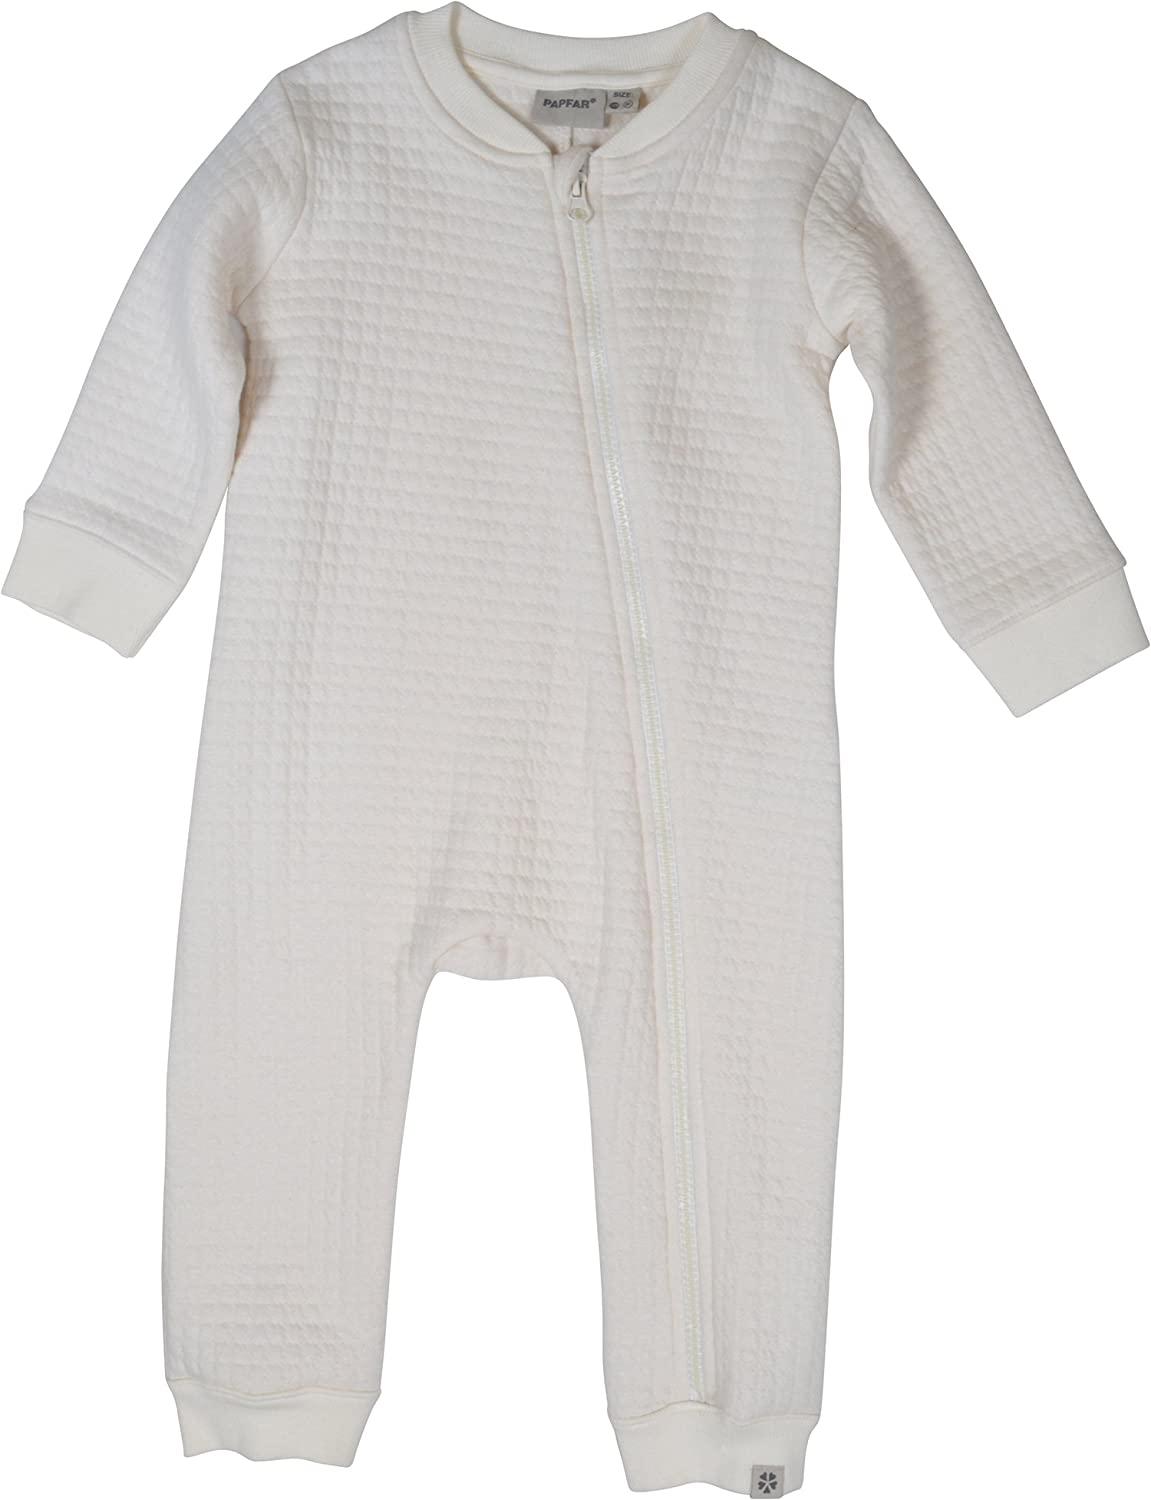 Papfar Spieler Quilted Sweat Baby, Pagliaccetto Unisex-Bimbi 716735